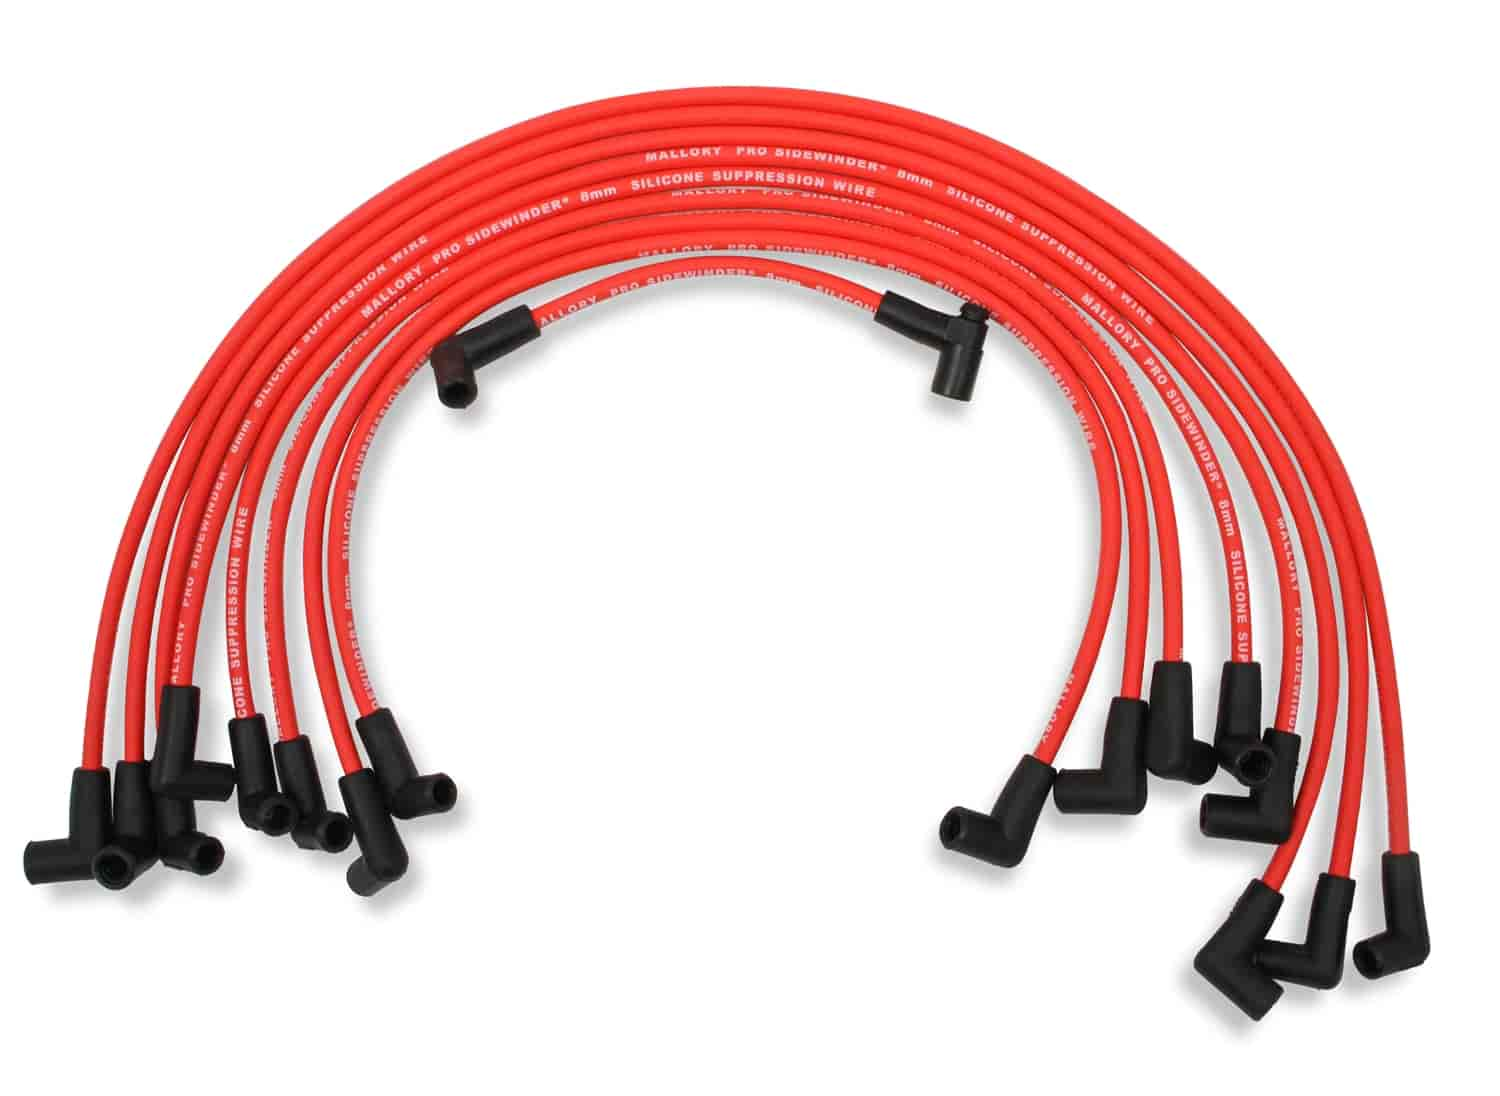 mallory 603 8mm red pro wire spark plug wire set 1985 up. Black Bedroom Furniture Sets. Home Design Ideas